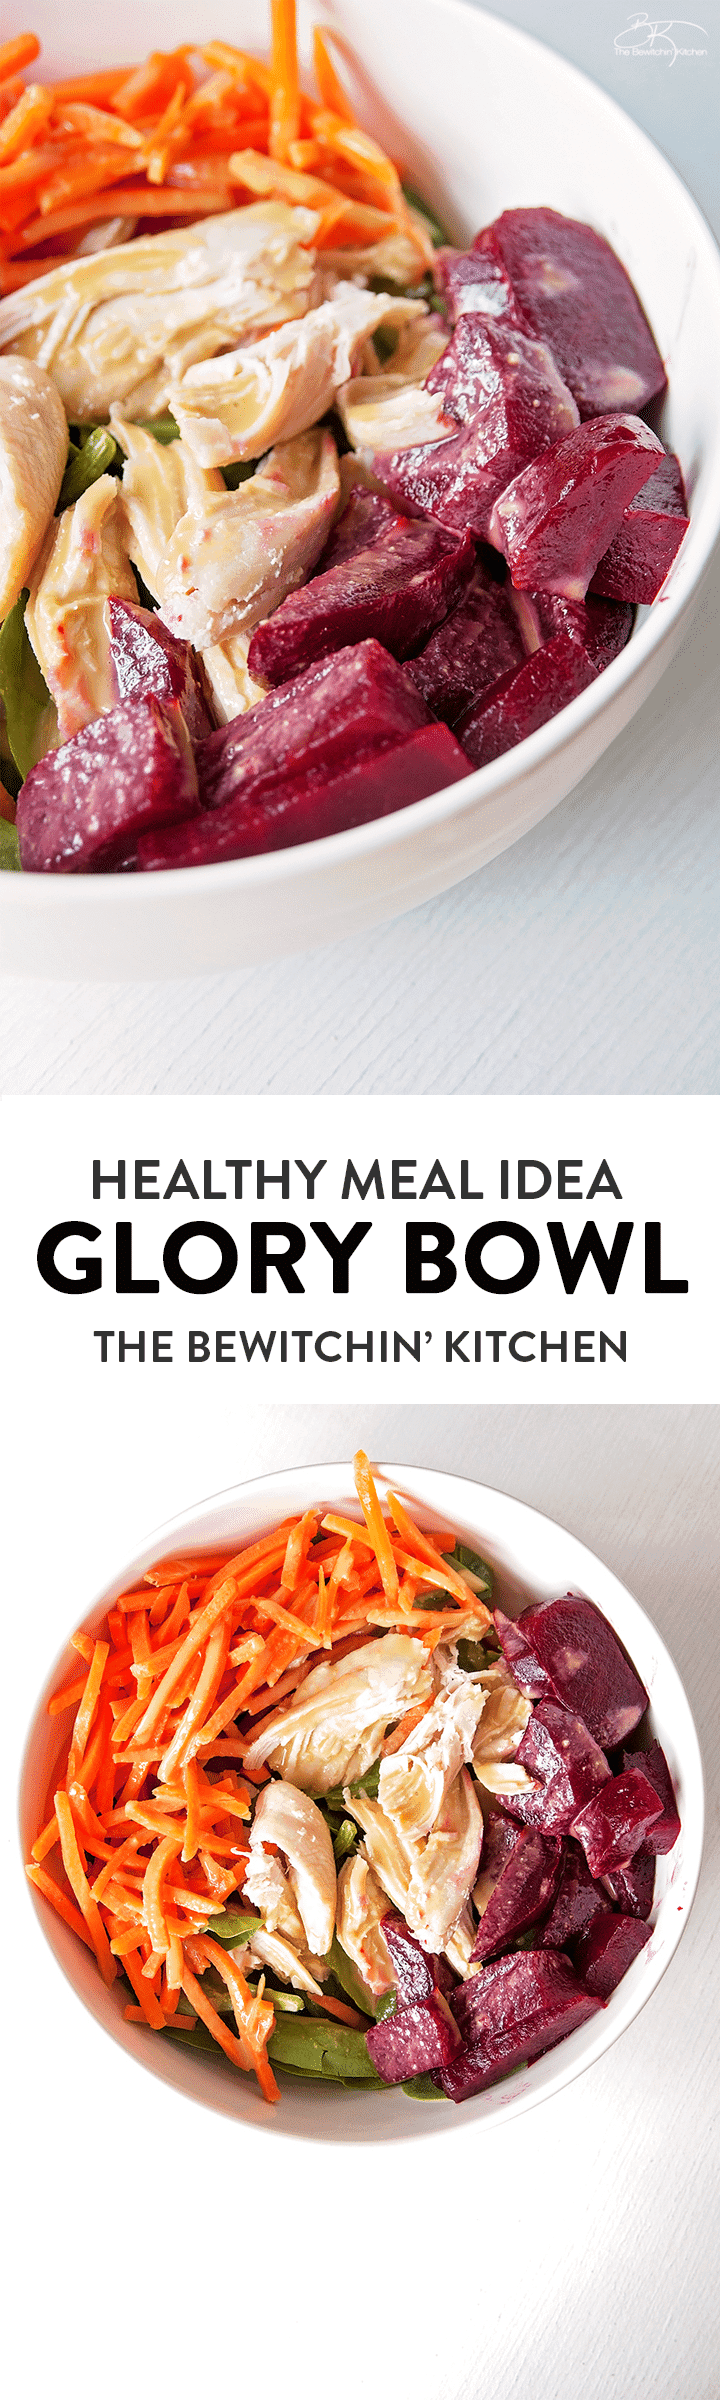 The Glory Bowl: one of my favorites! Healthy meal idea that's great for nutritious lunch or as a healthy dinner recipe.